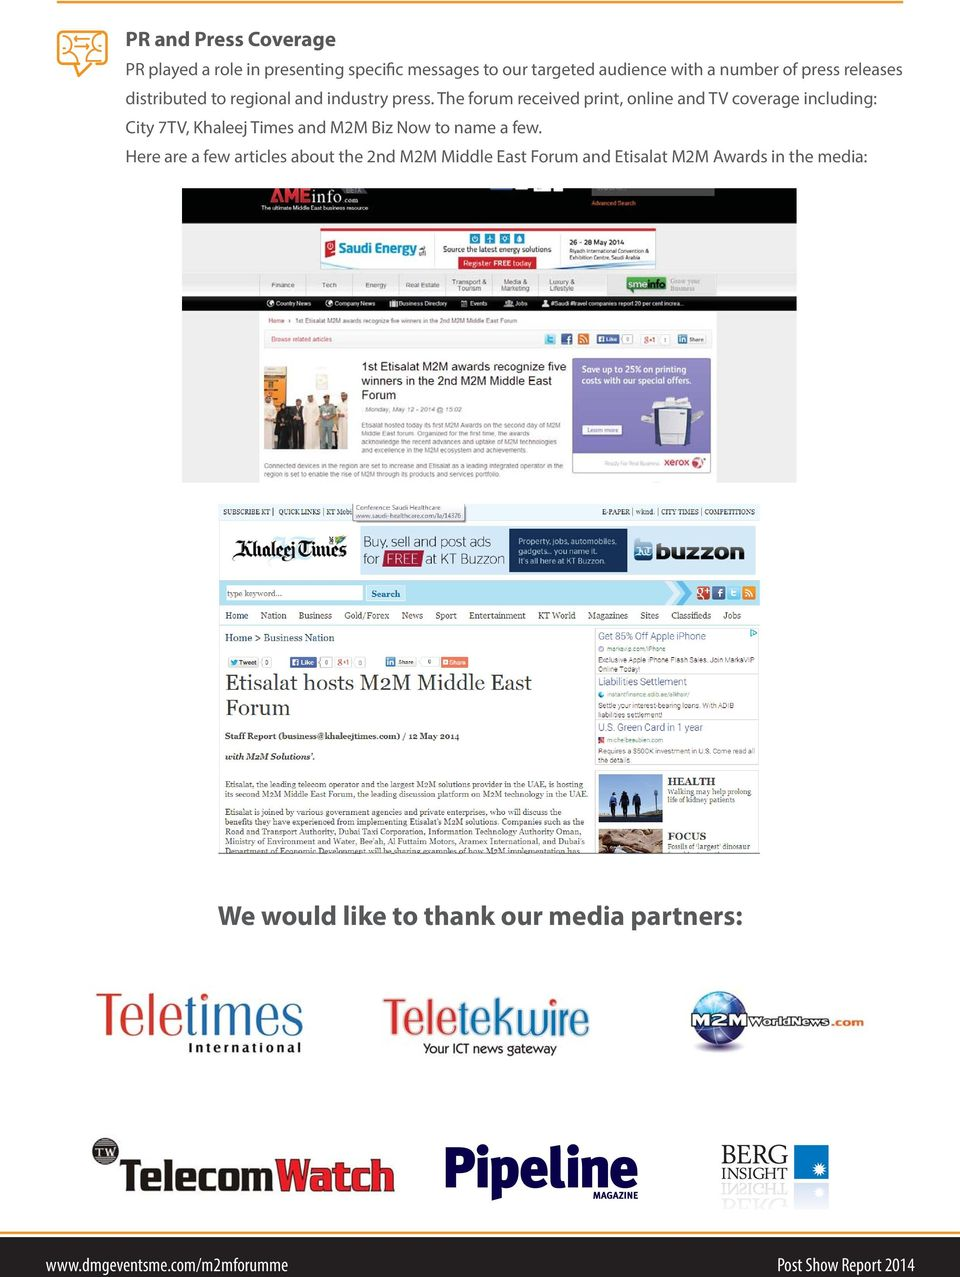 The forum received print, online and TV coverage including: City 7TV, Khaleej Times and M2M Biz Now to name a